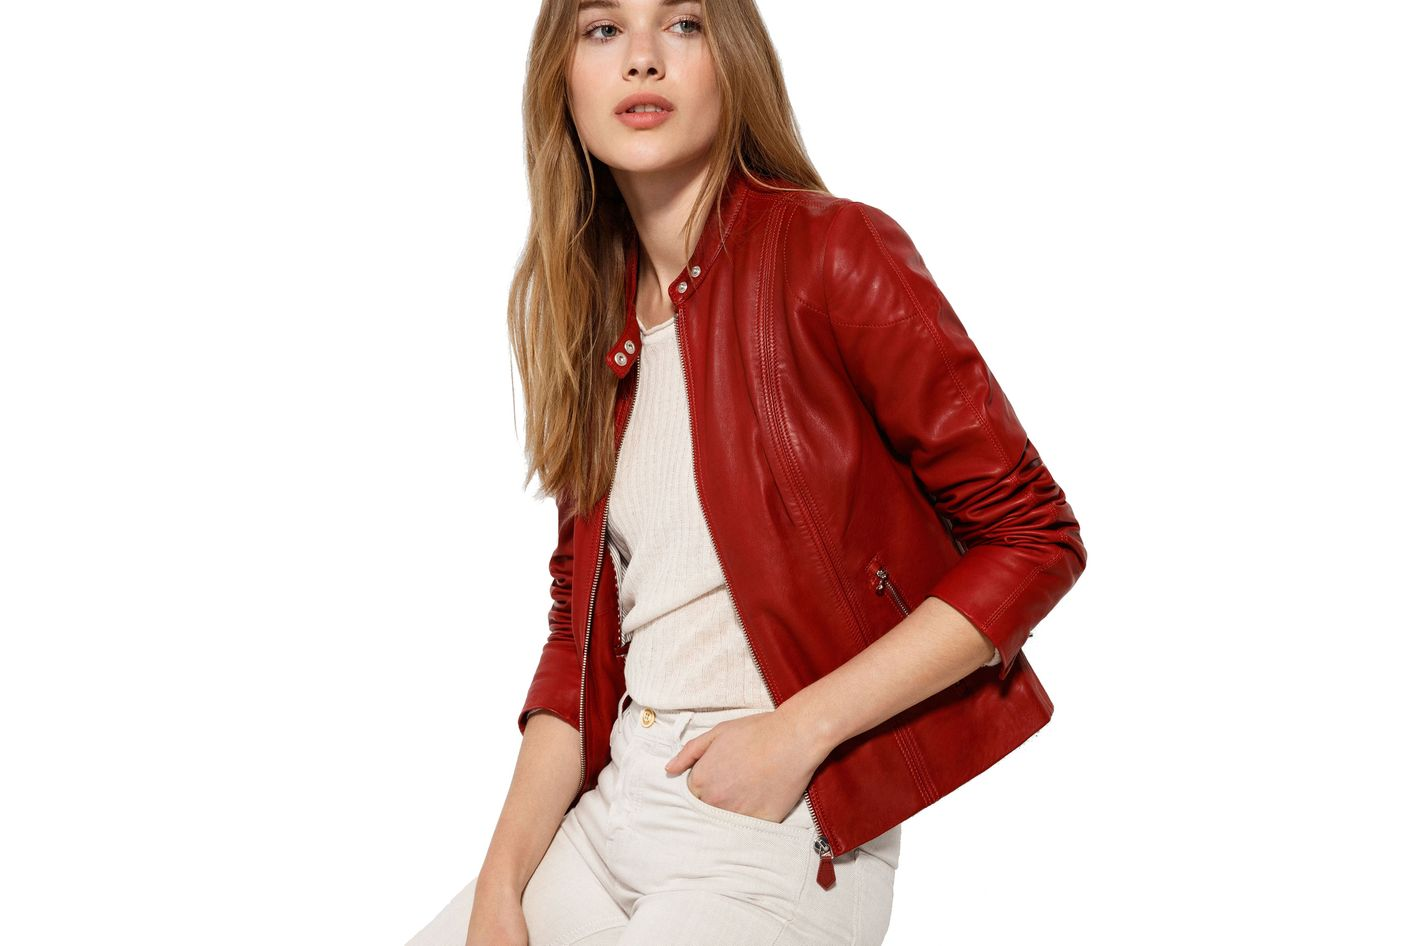 344e8762 How 5 Cool Women Wear Their Leather Jackets